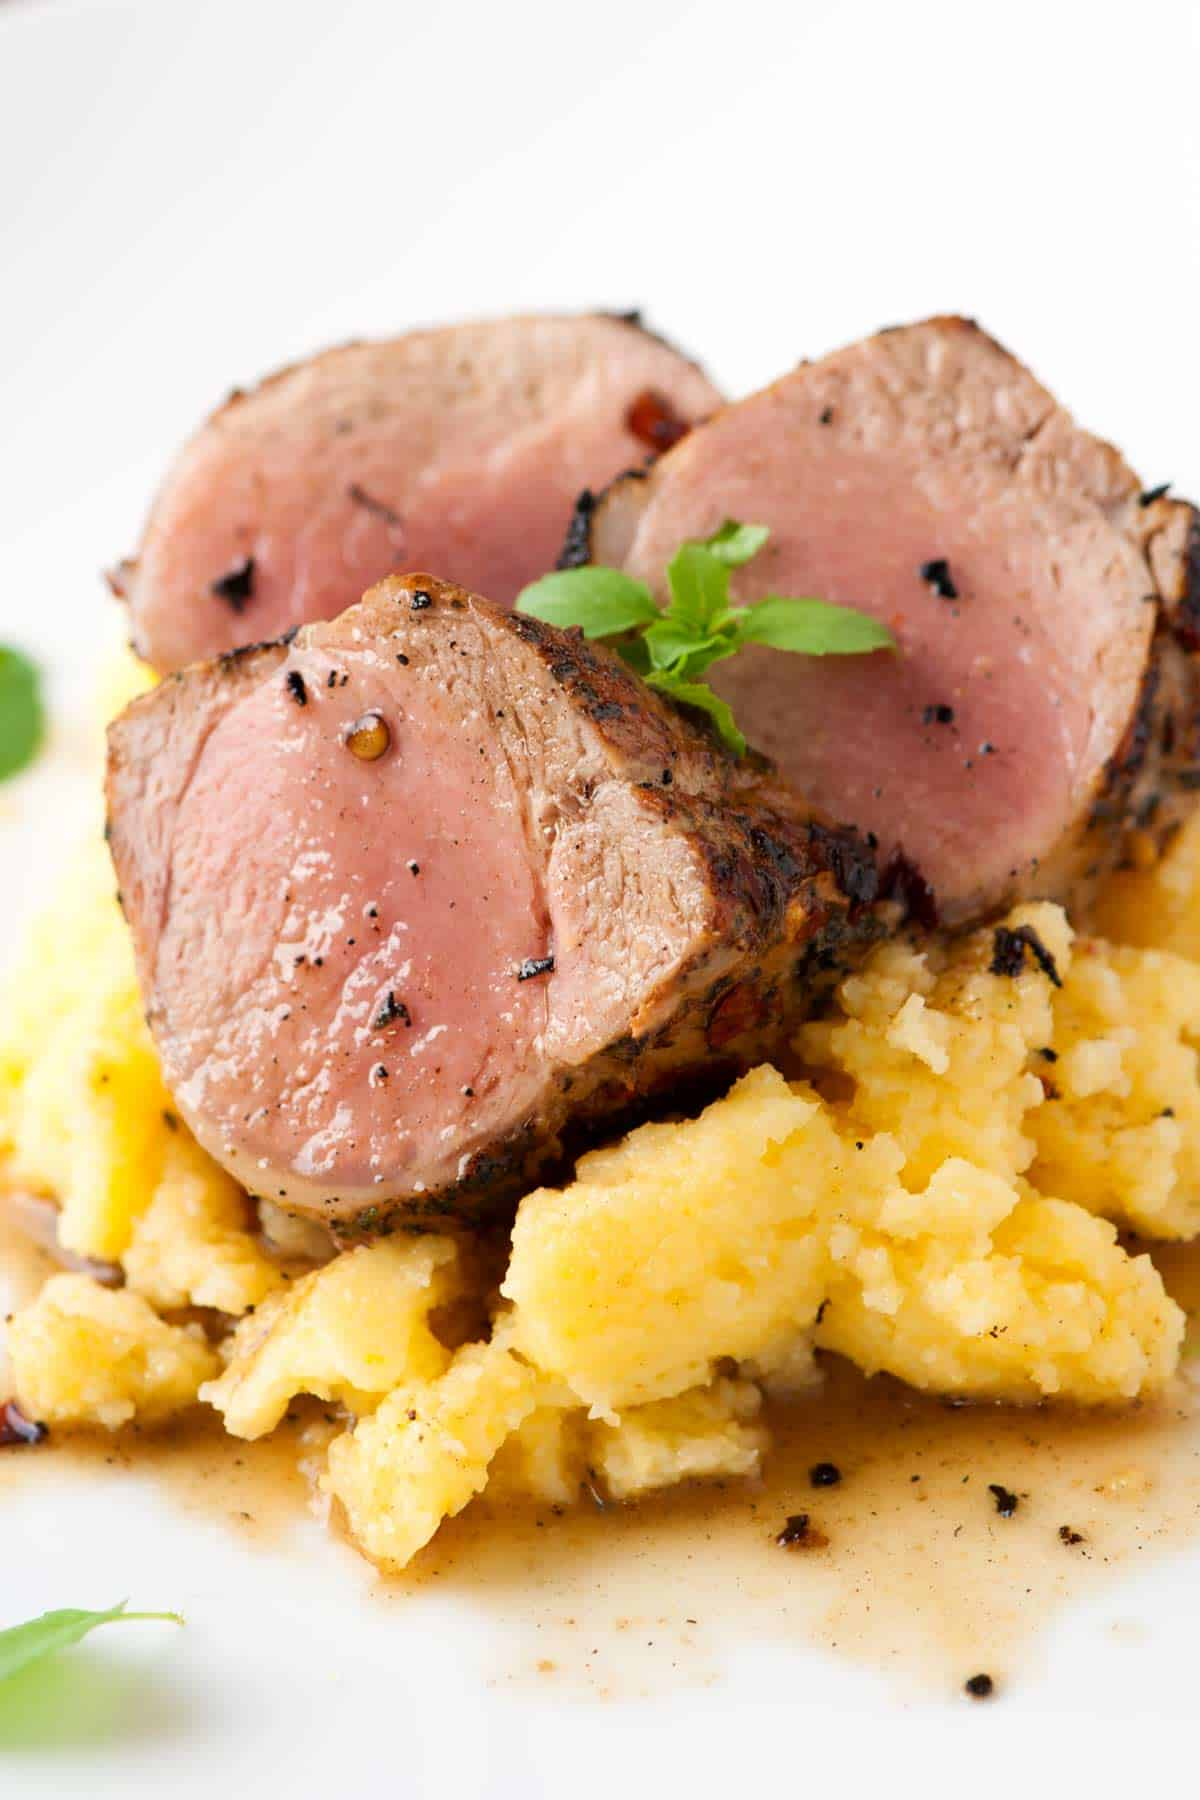 How to Make Pork Tenderloin